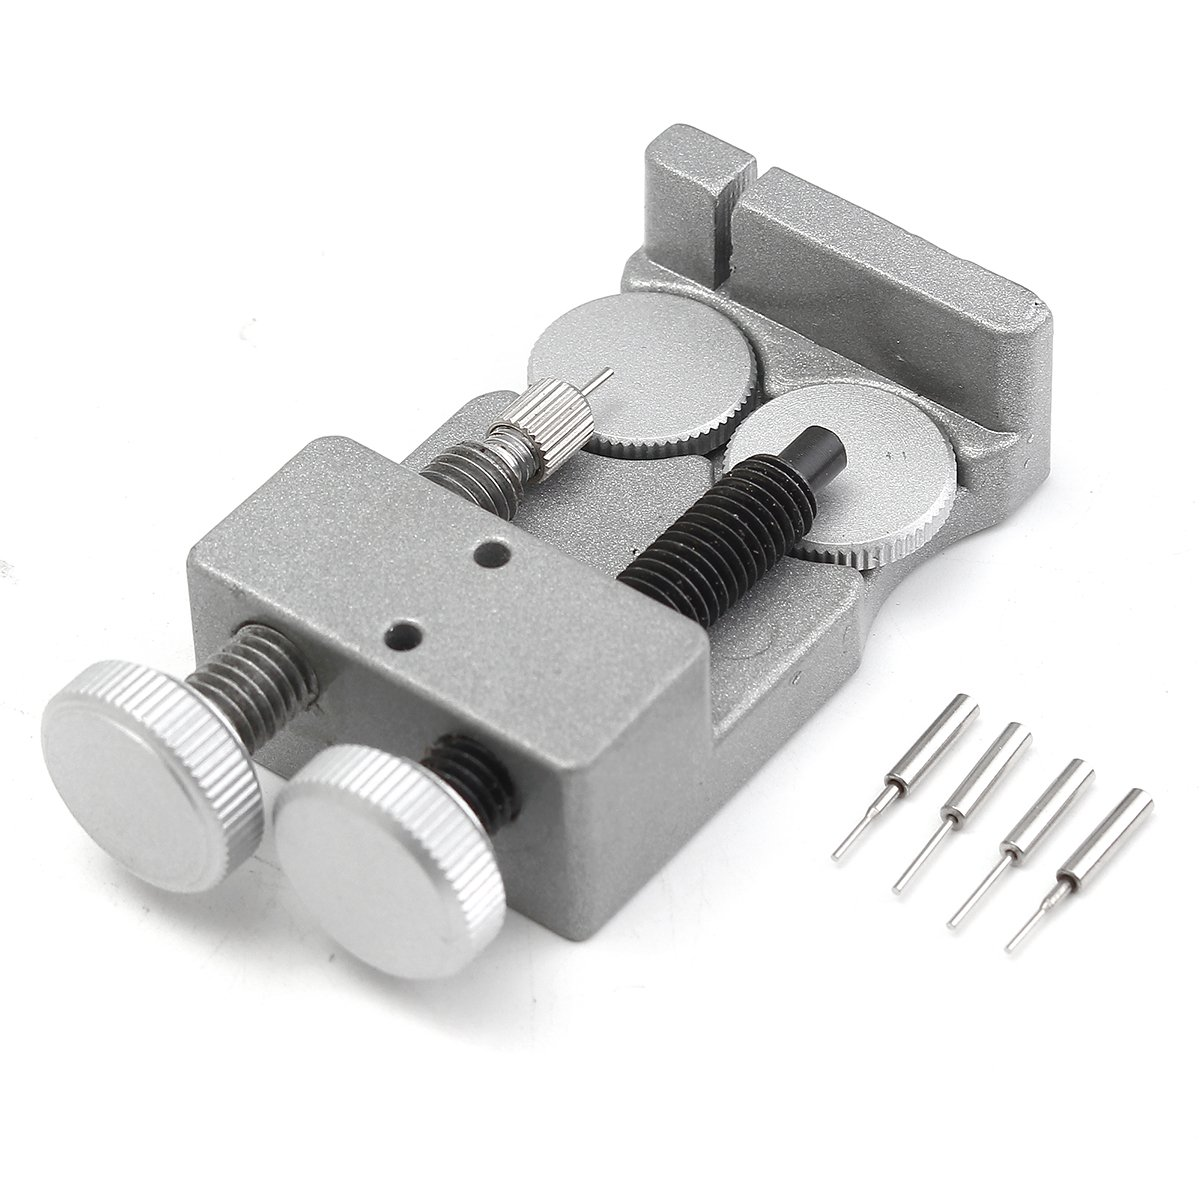 Baban Watch Band Strap Link Pin Remover Watch Repair Tool Strap Adjust Tool Metal for Watchmakers With 3 Extra Pins